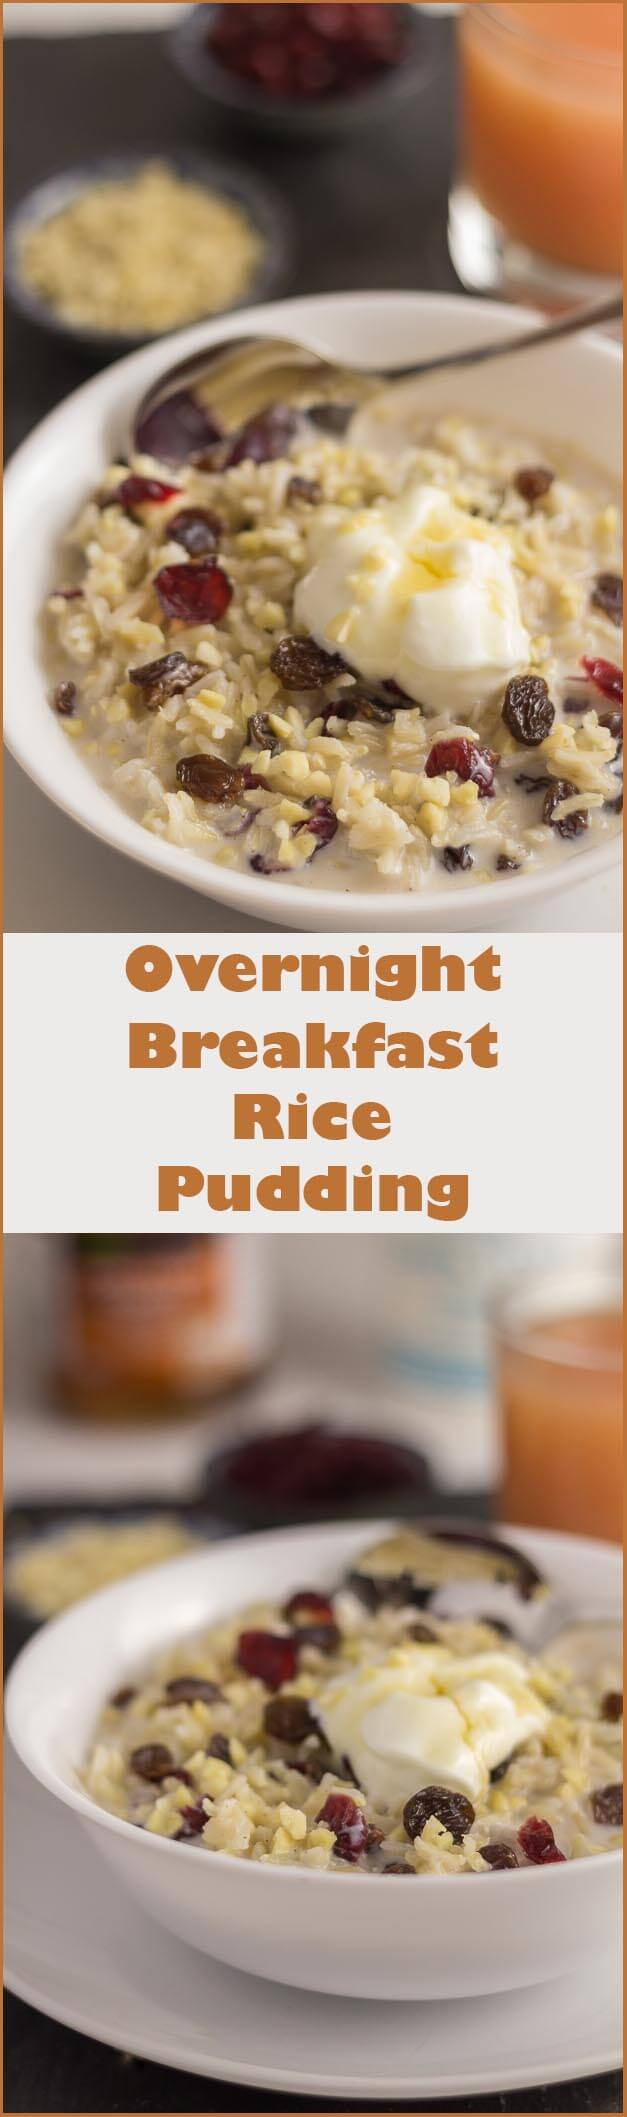 Overnight breakfast rice pudding. The sweet tasting combination of the cinnamon and vanilla infused milk, absorbed by the rice is just delicious, and provides a perfect way to use up any left over rice!